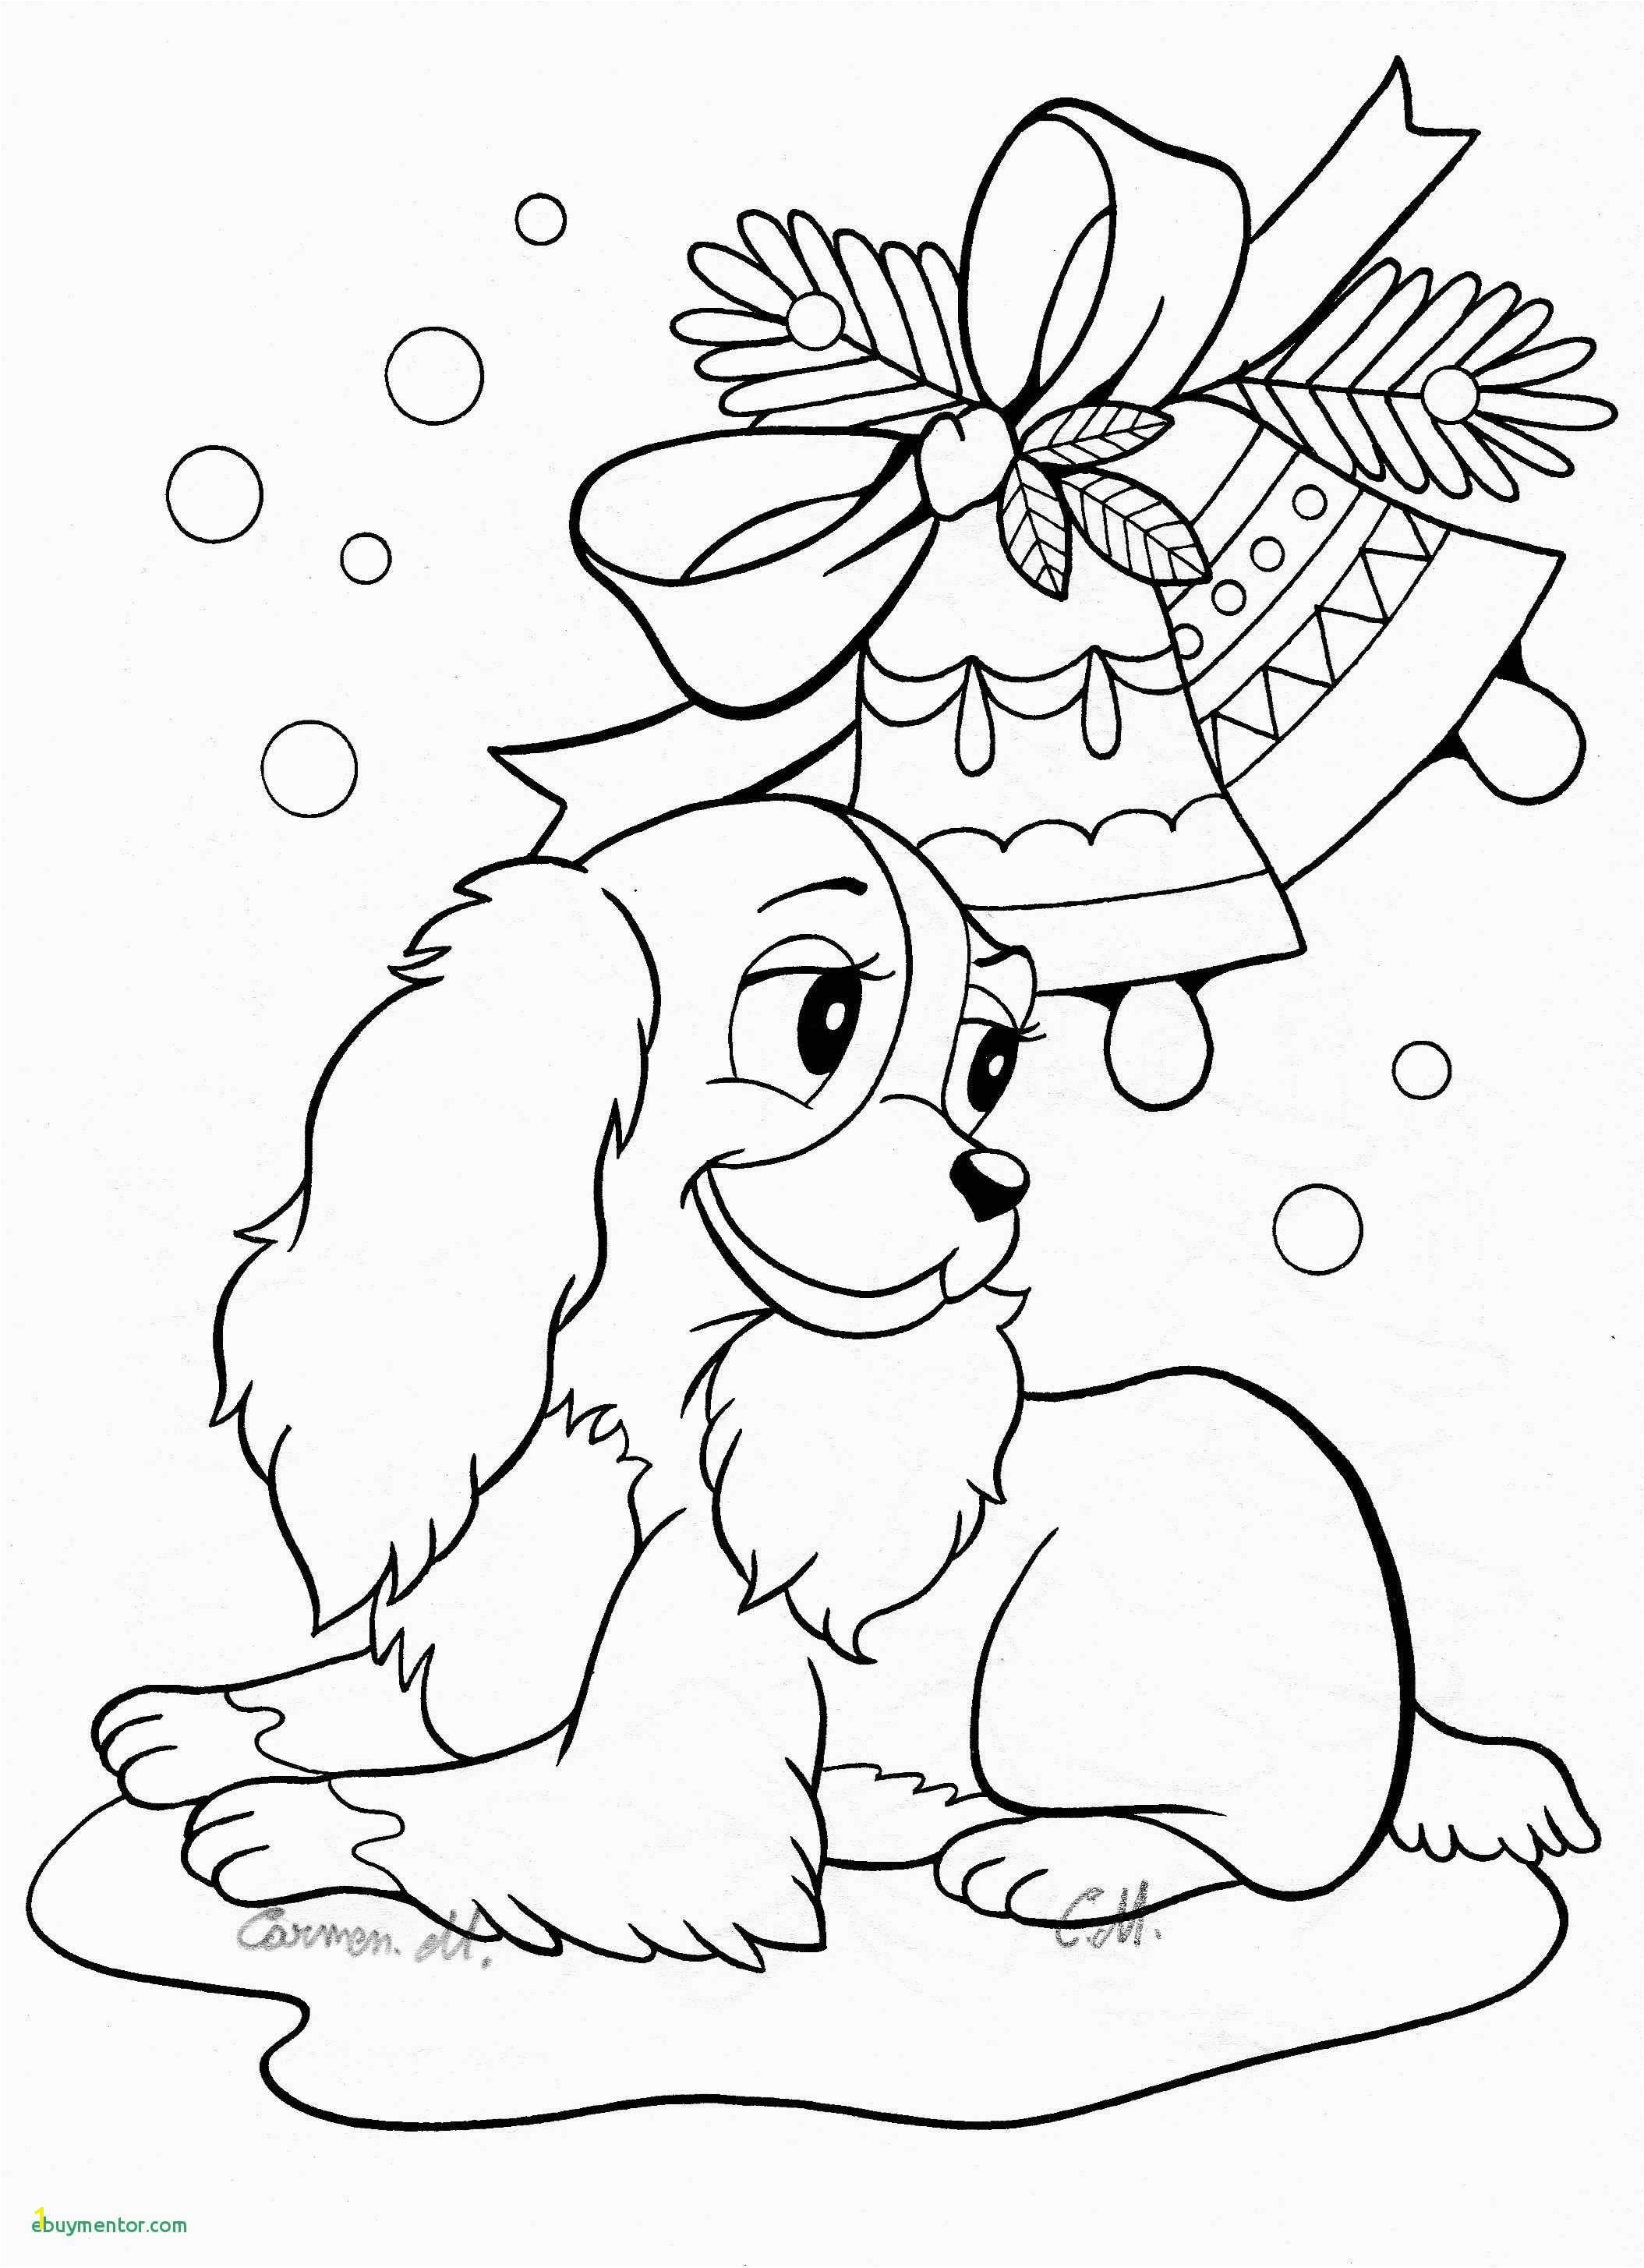 Dog and Puppy Coloring Pages Christmas Puppy Coloring Pages Christmas Coloring Pages Puppy Fresh